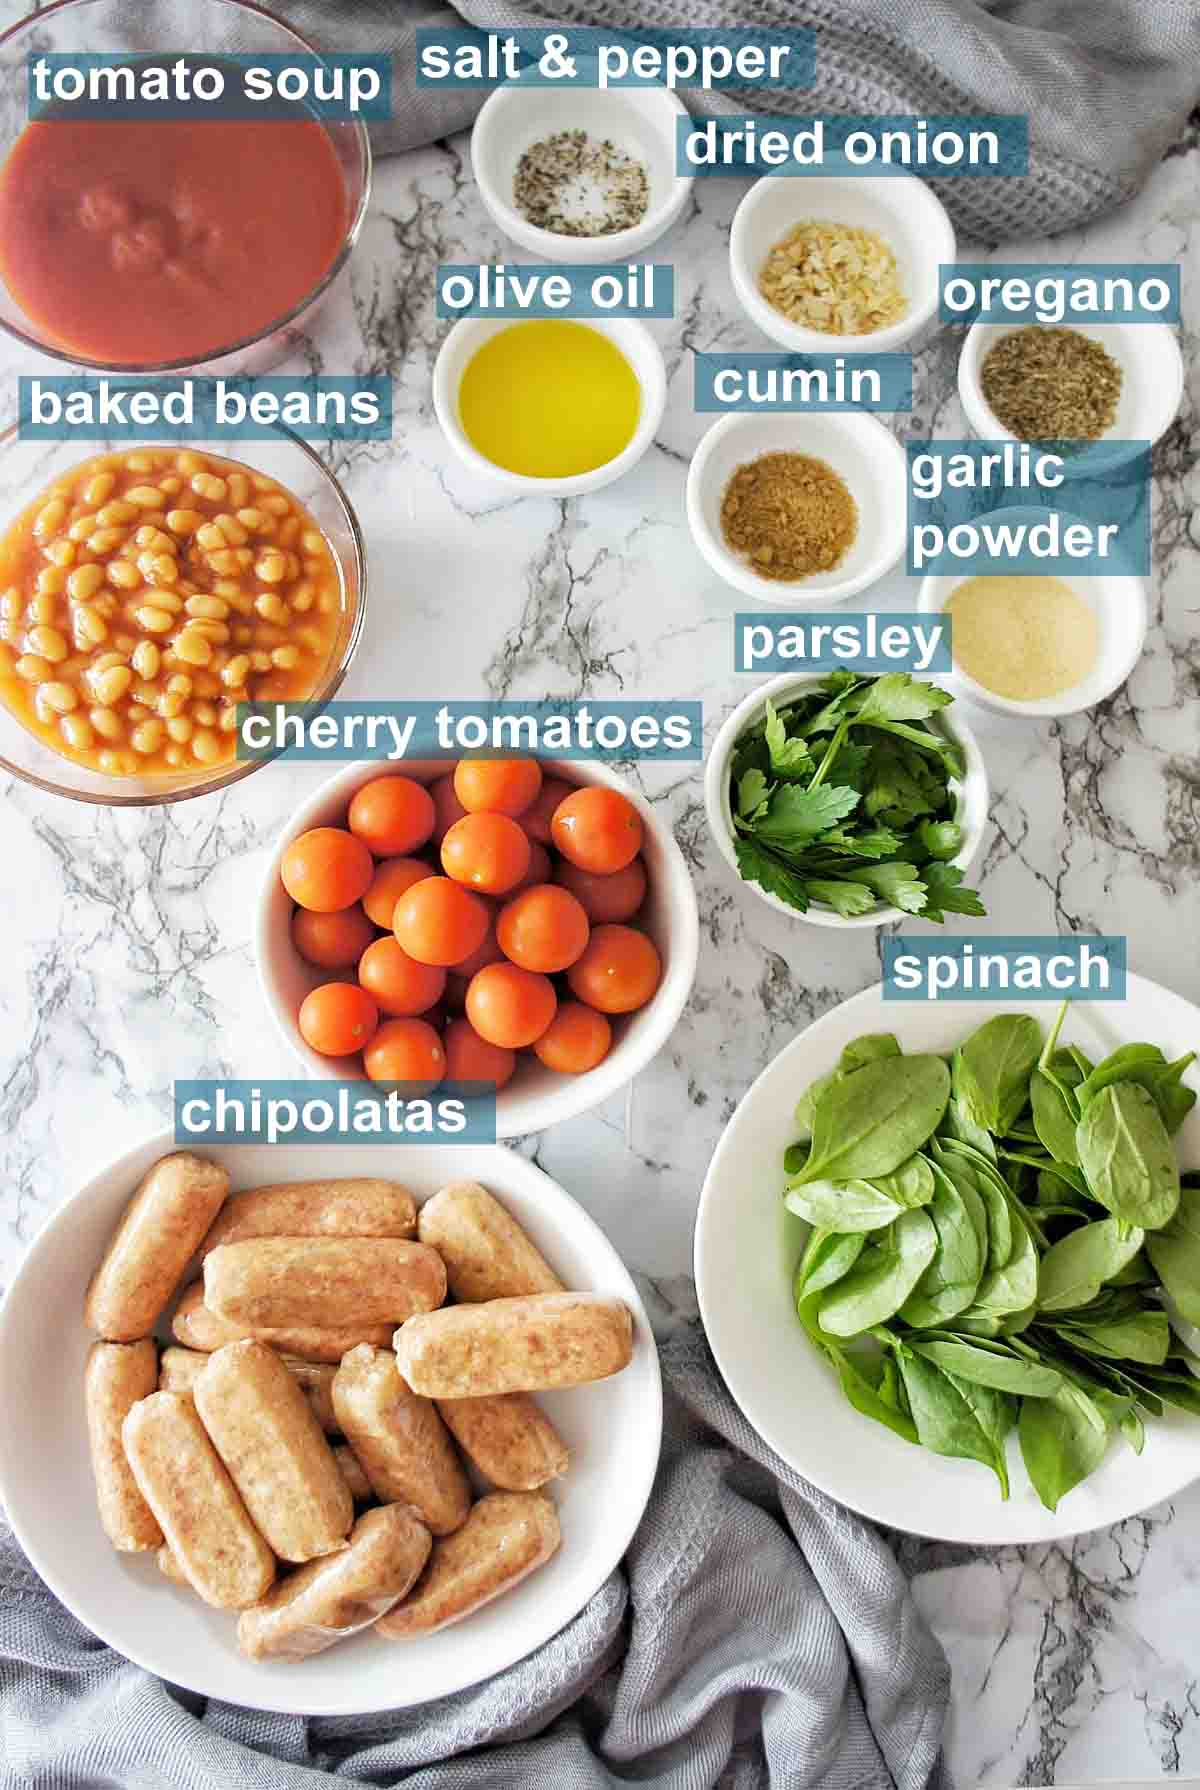 Ingredients for Chipolatas with Baked Beans